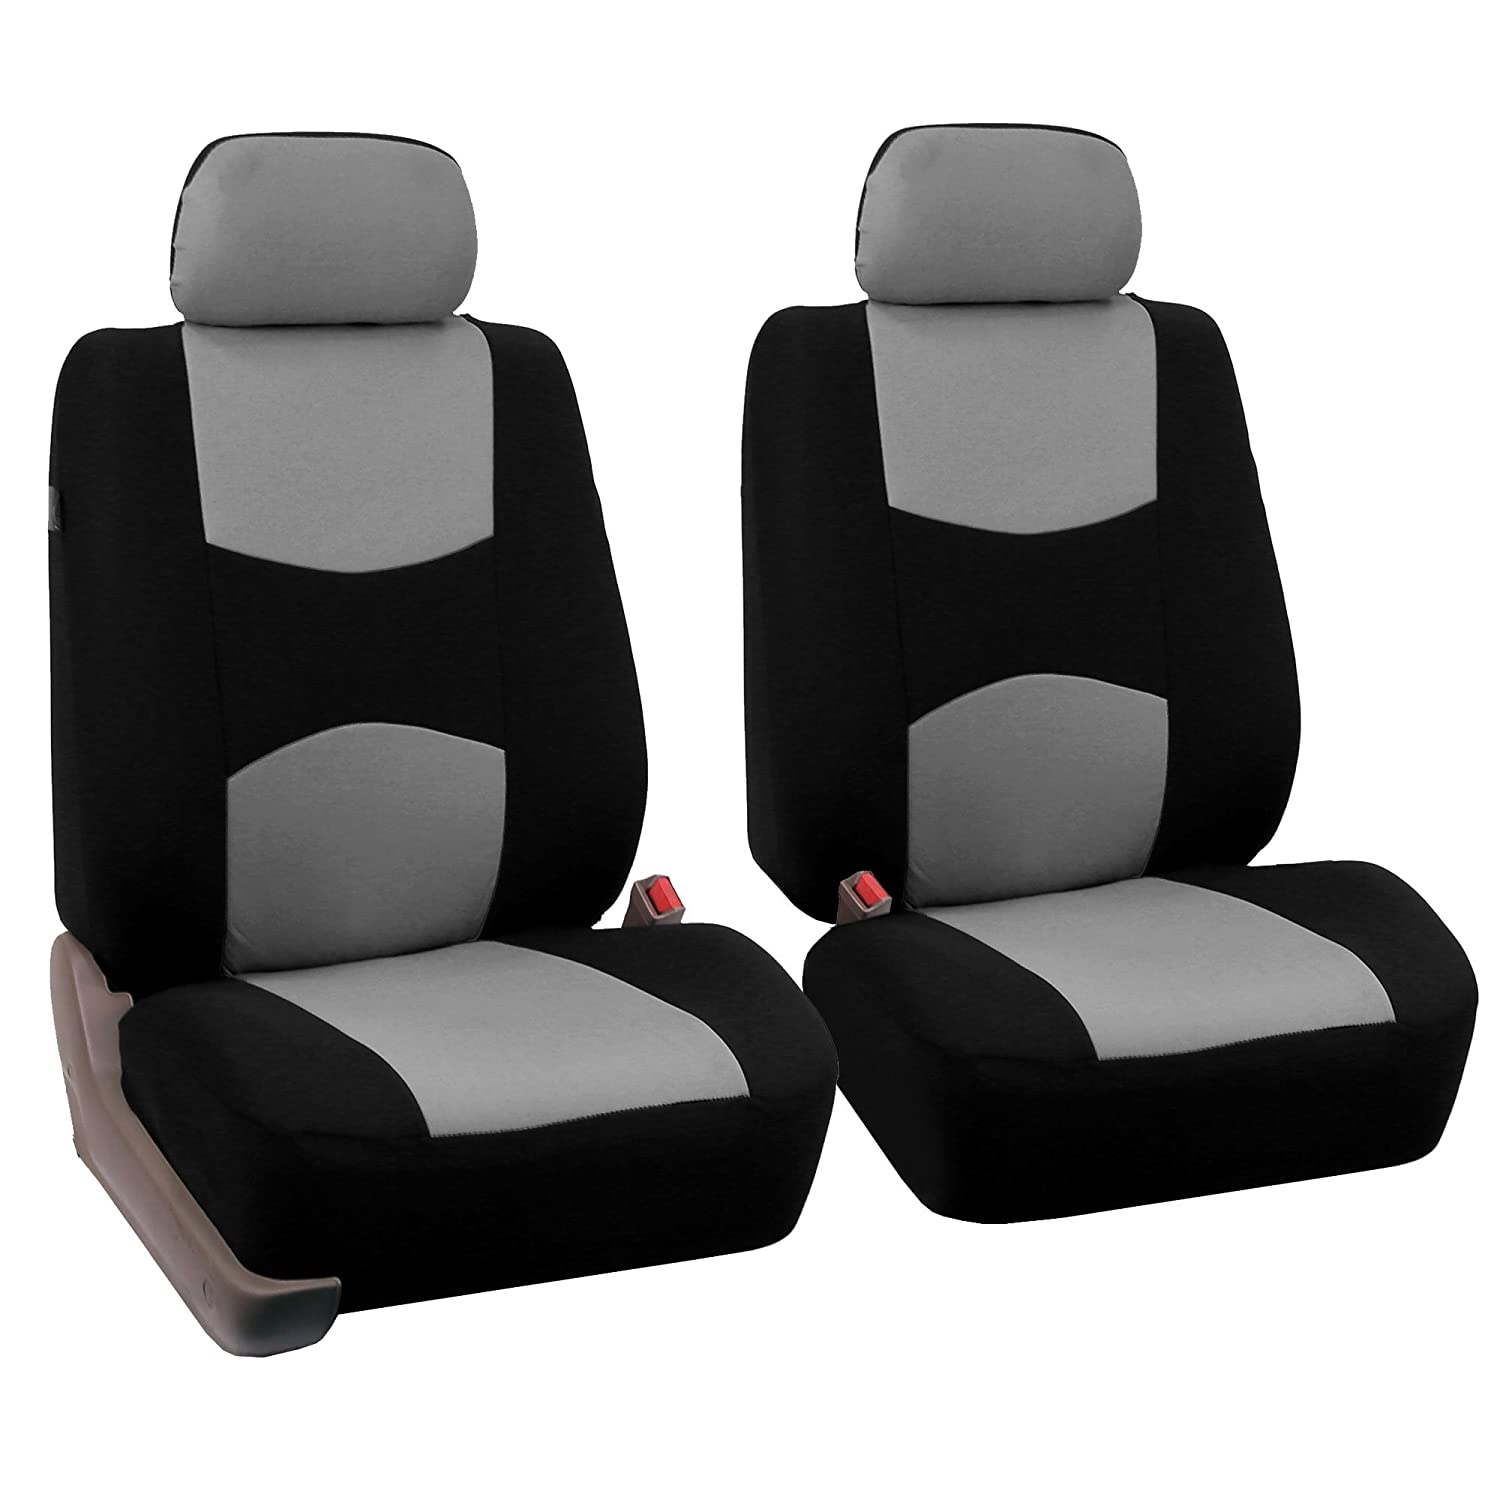 FH Universal Bucket Car Seat Covers Image